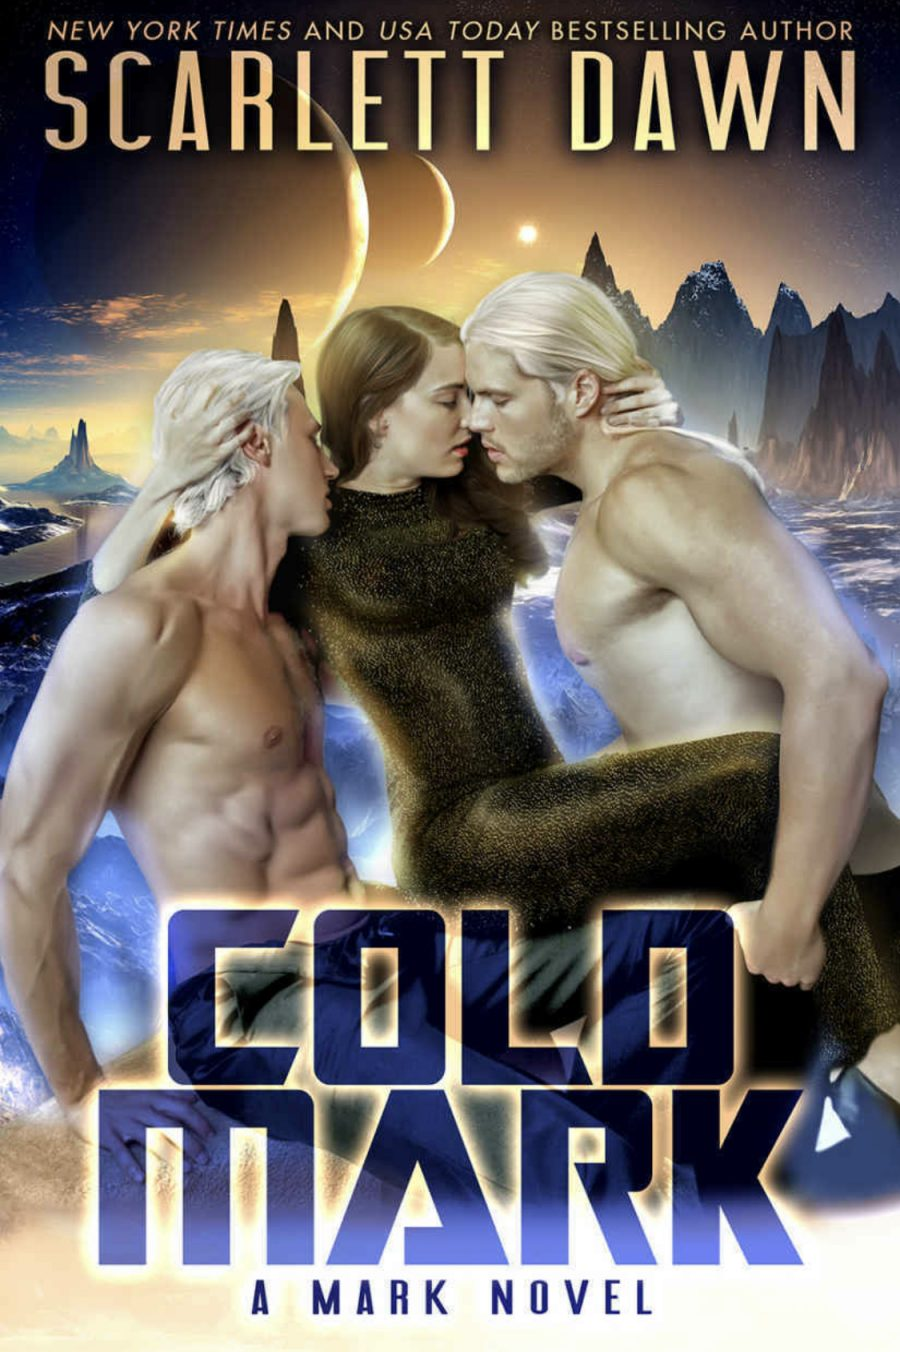 Cold Mark by Scarlett Dawn - A Book Review #BookReview #SciFi #SciFiRomance #Menage #HEA #OlderSeries #KindleUnlimited #KU